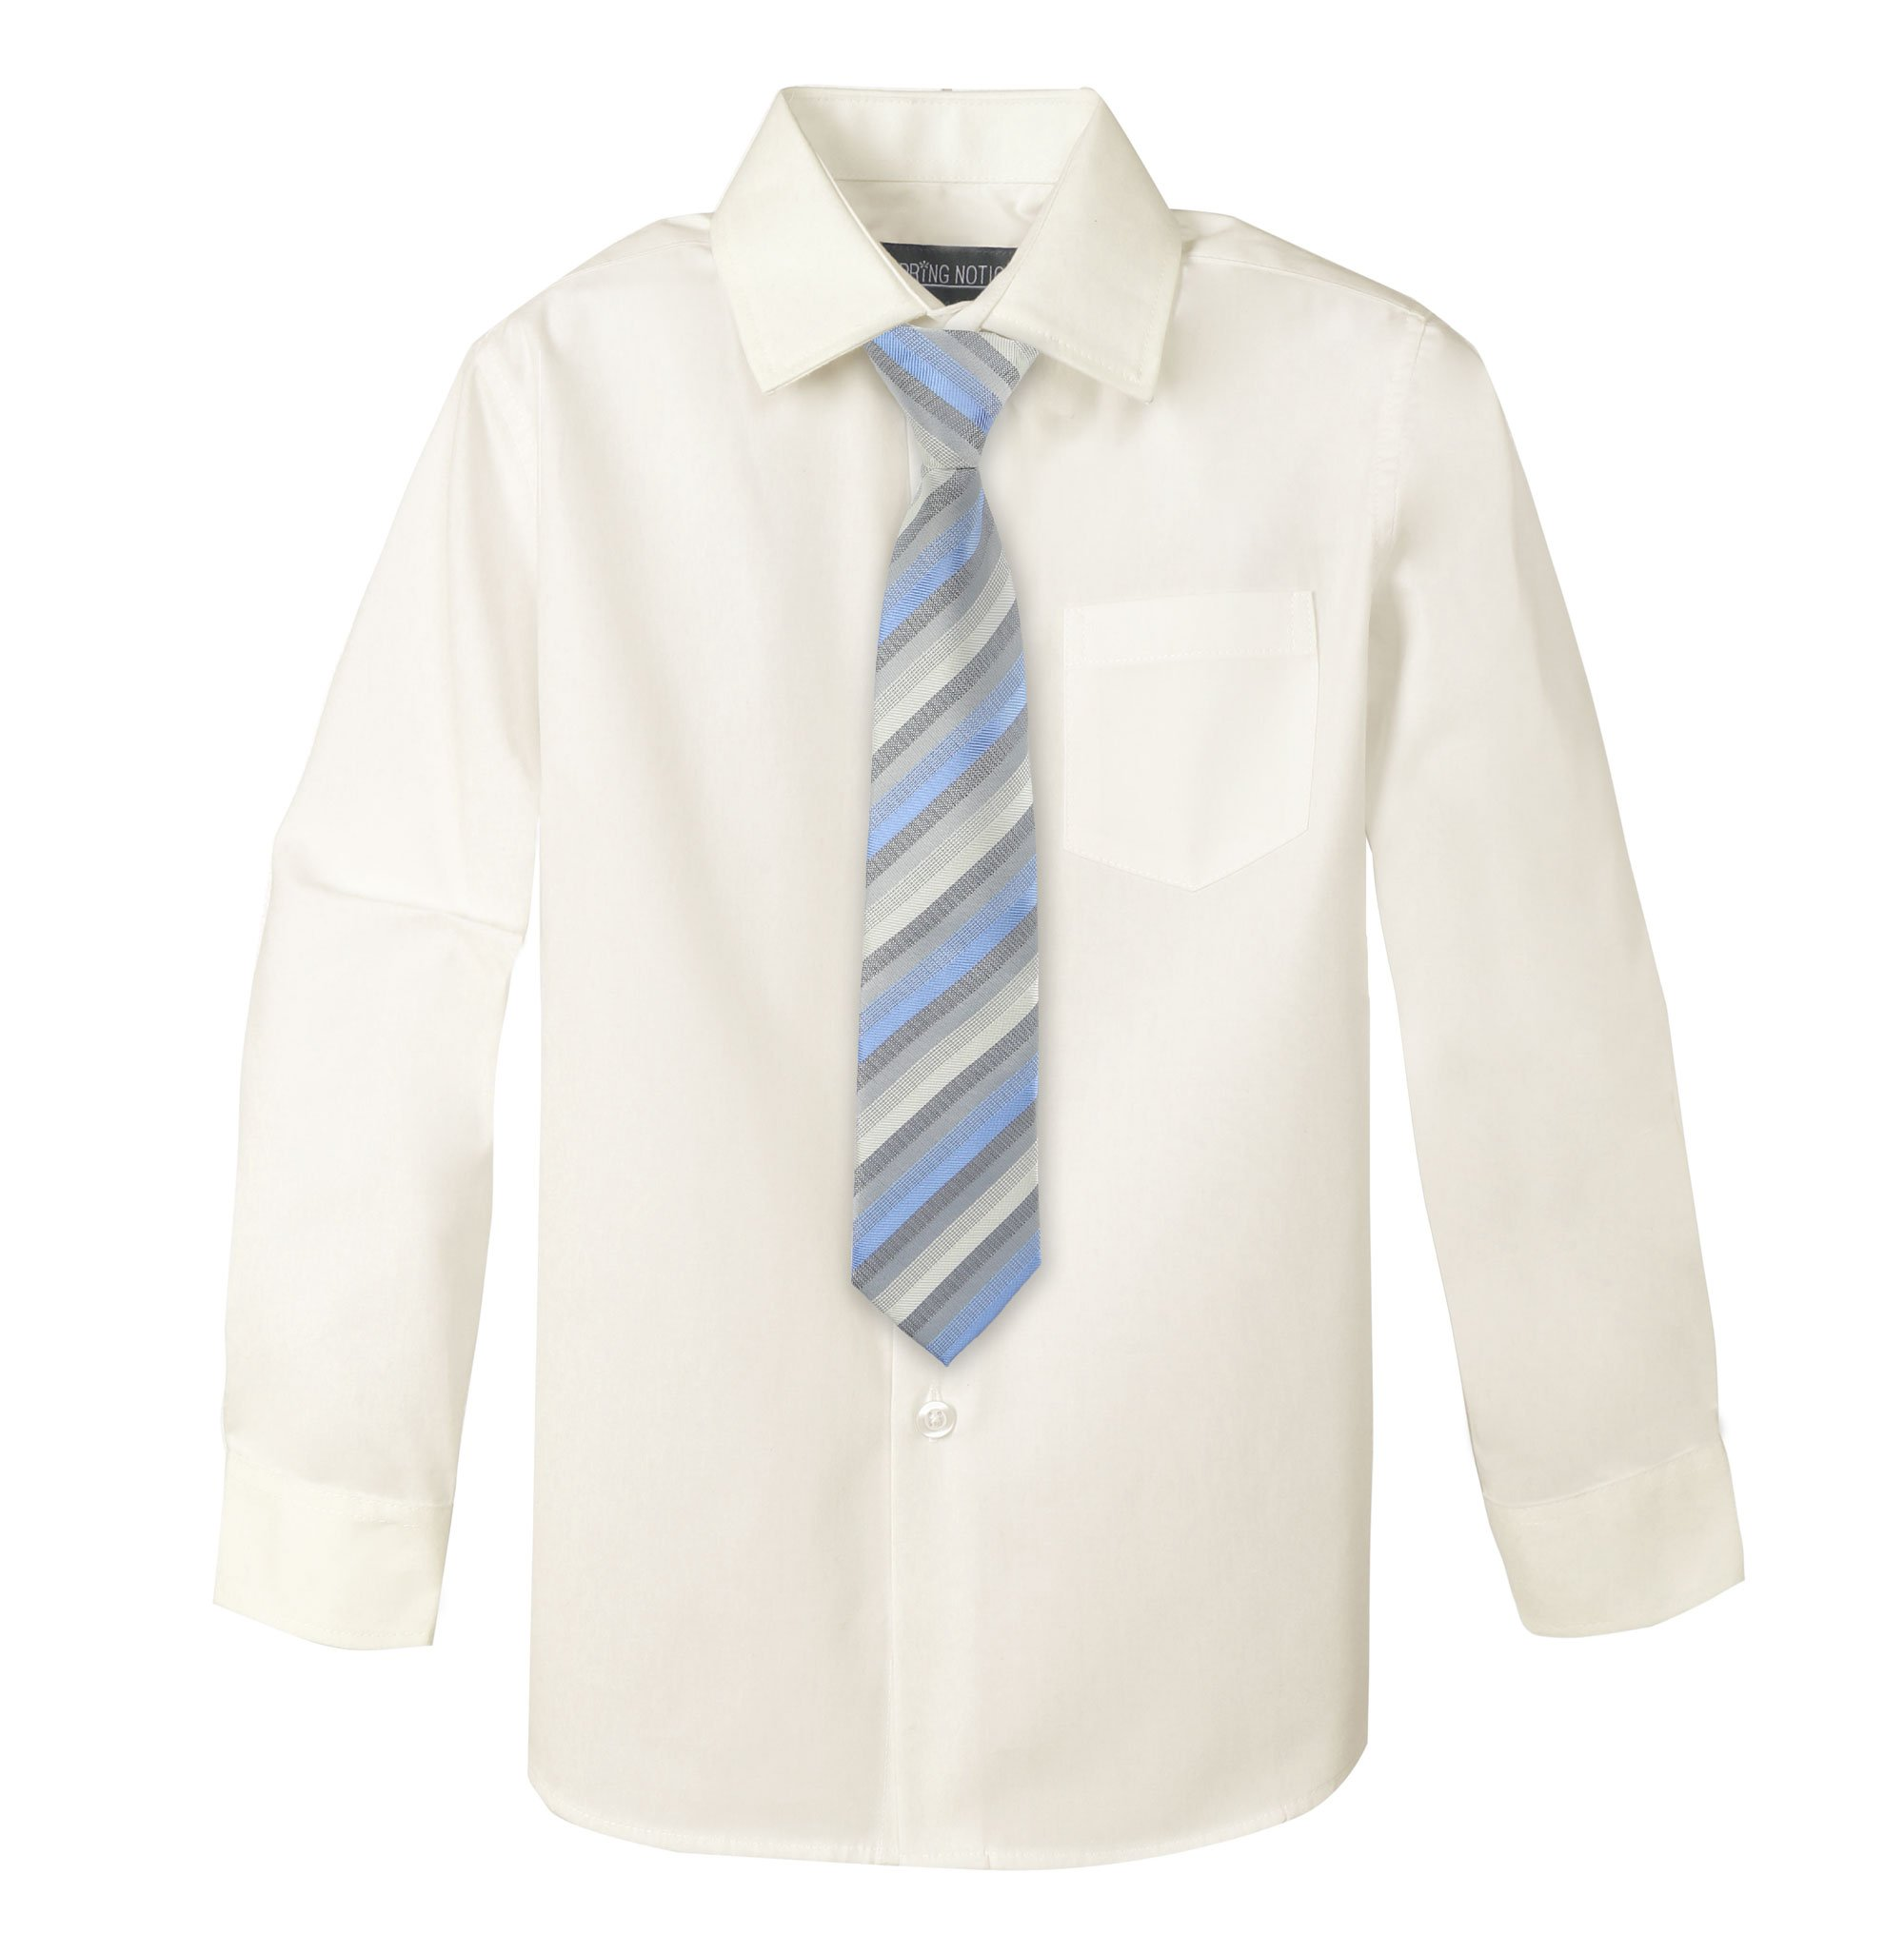 Spring Notion Big Boys' Cotton Blend Dress Shirt and Tie Set 18M Ivory